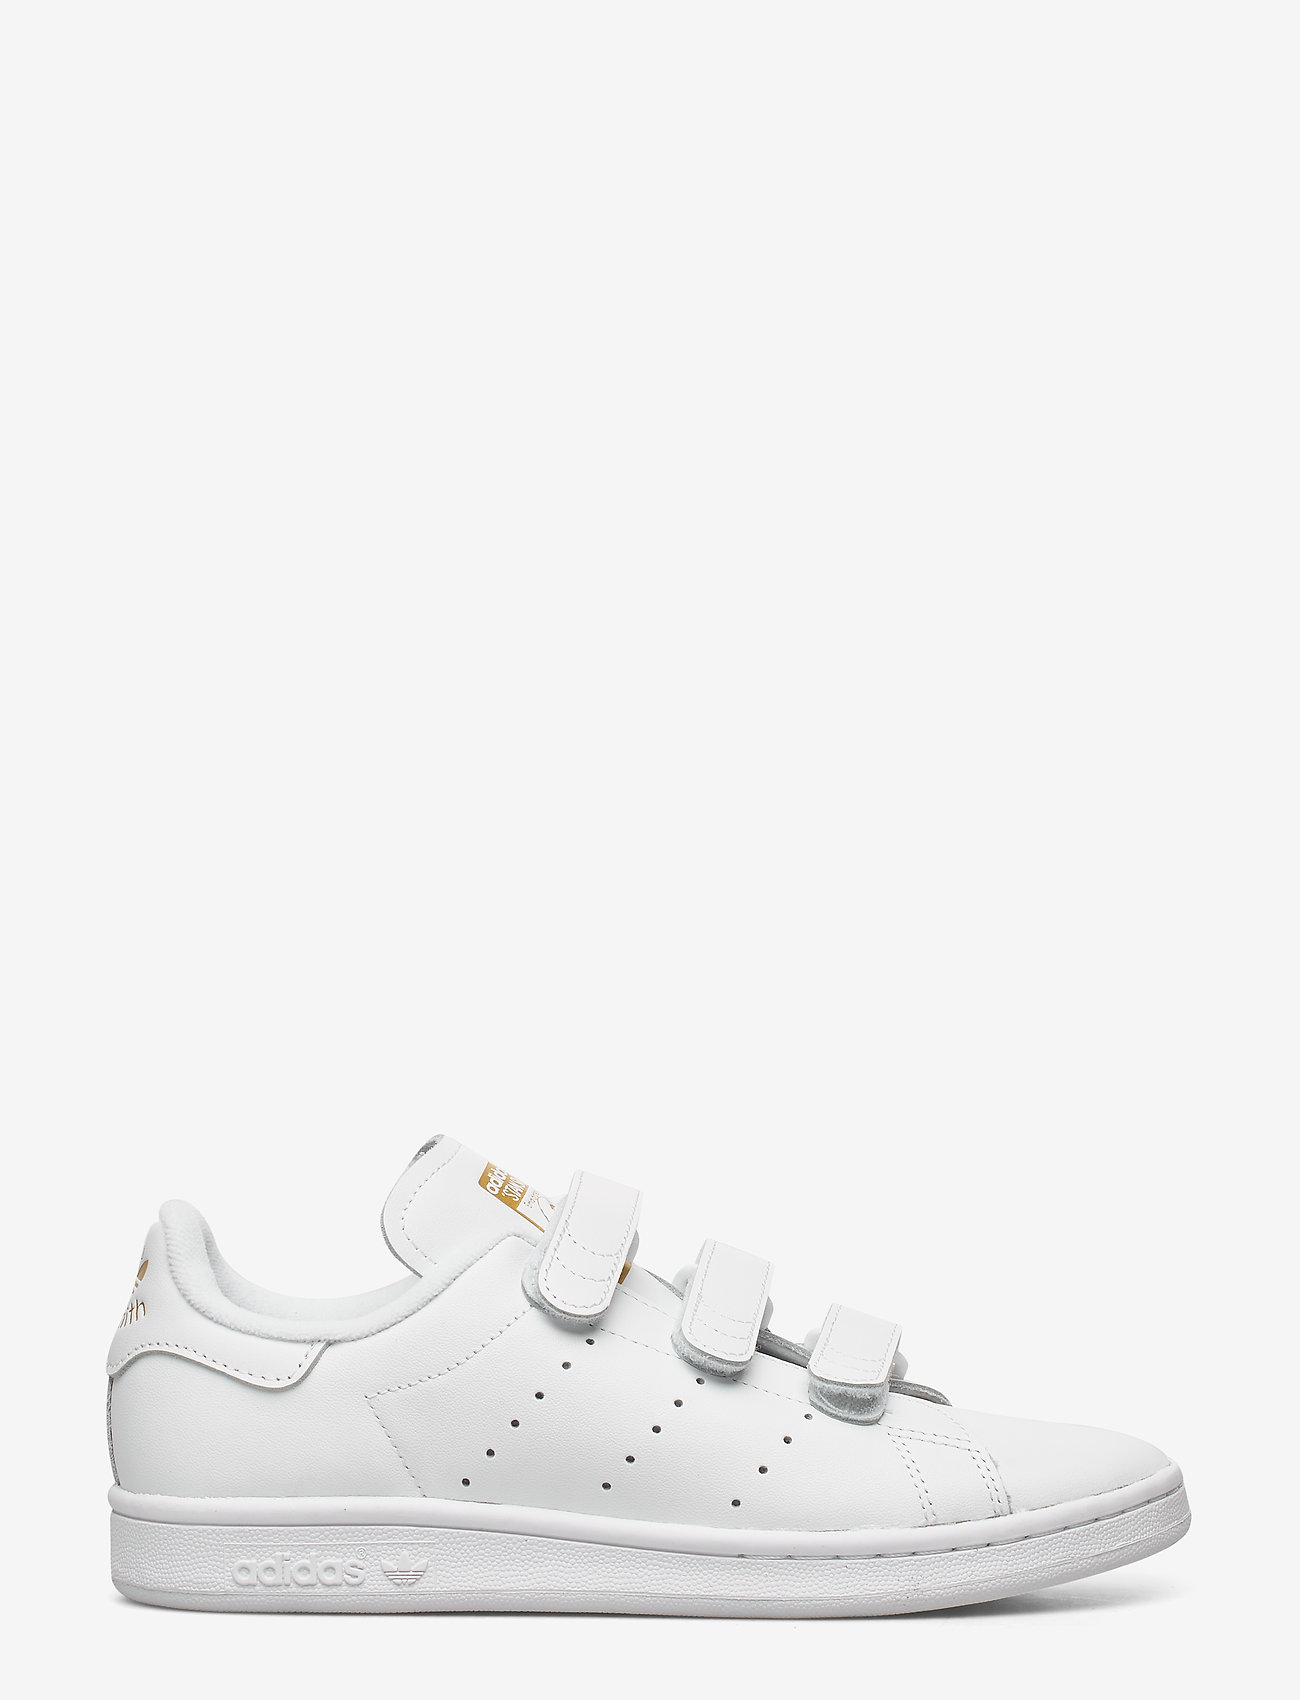 adidas Originals - STAN SMITH CF - lav ankel - ftwwht/ftwwht/goldmt - 1